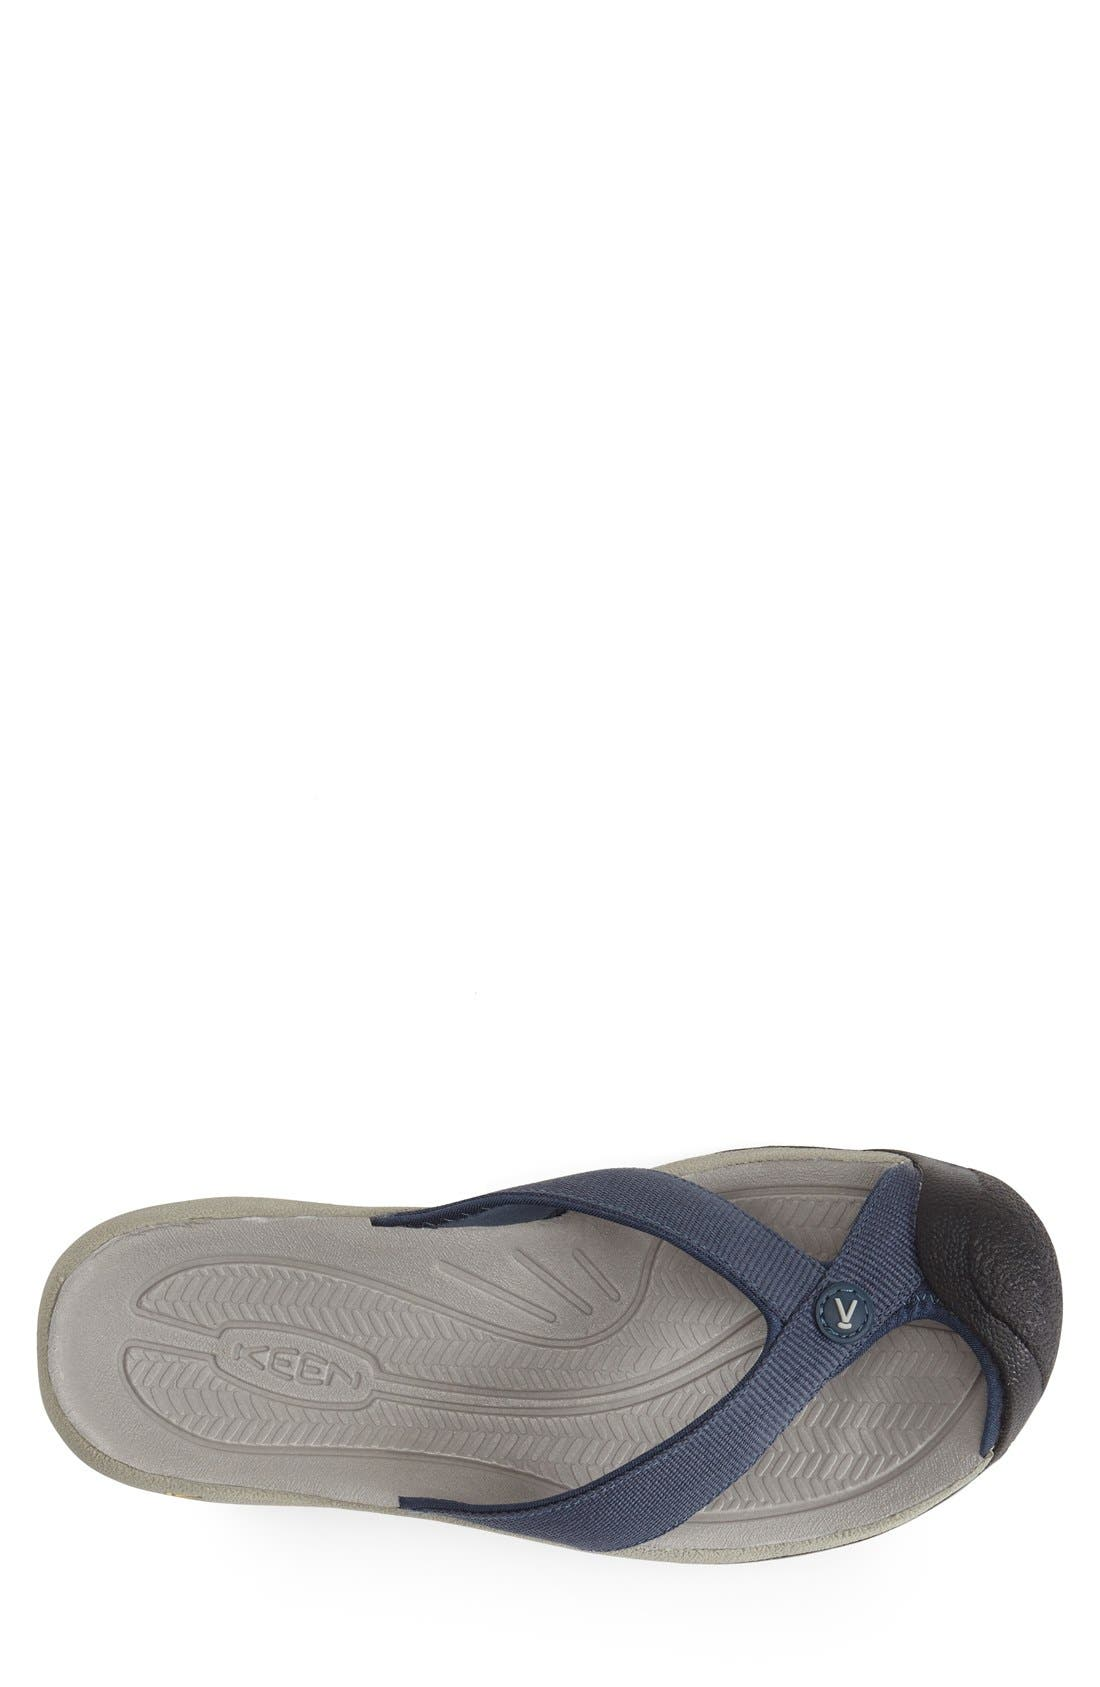 'Waimea H2' Water Thong Sandal,                             Alternate thumbnail 3, color,                             Midnight Navy/ Neutral